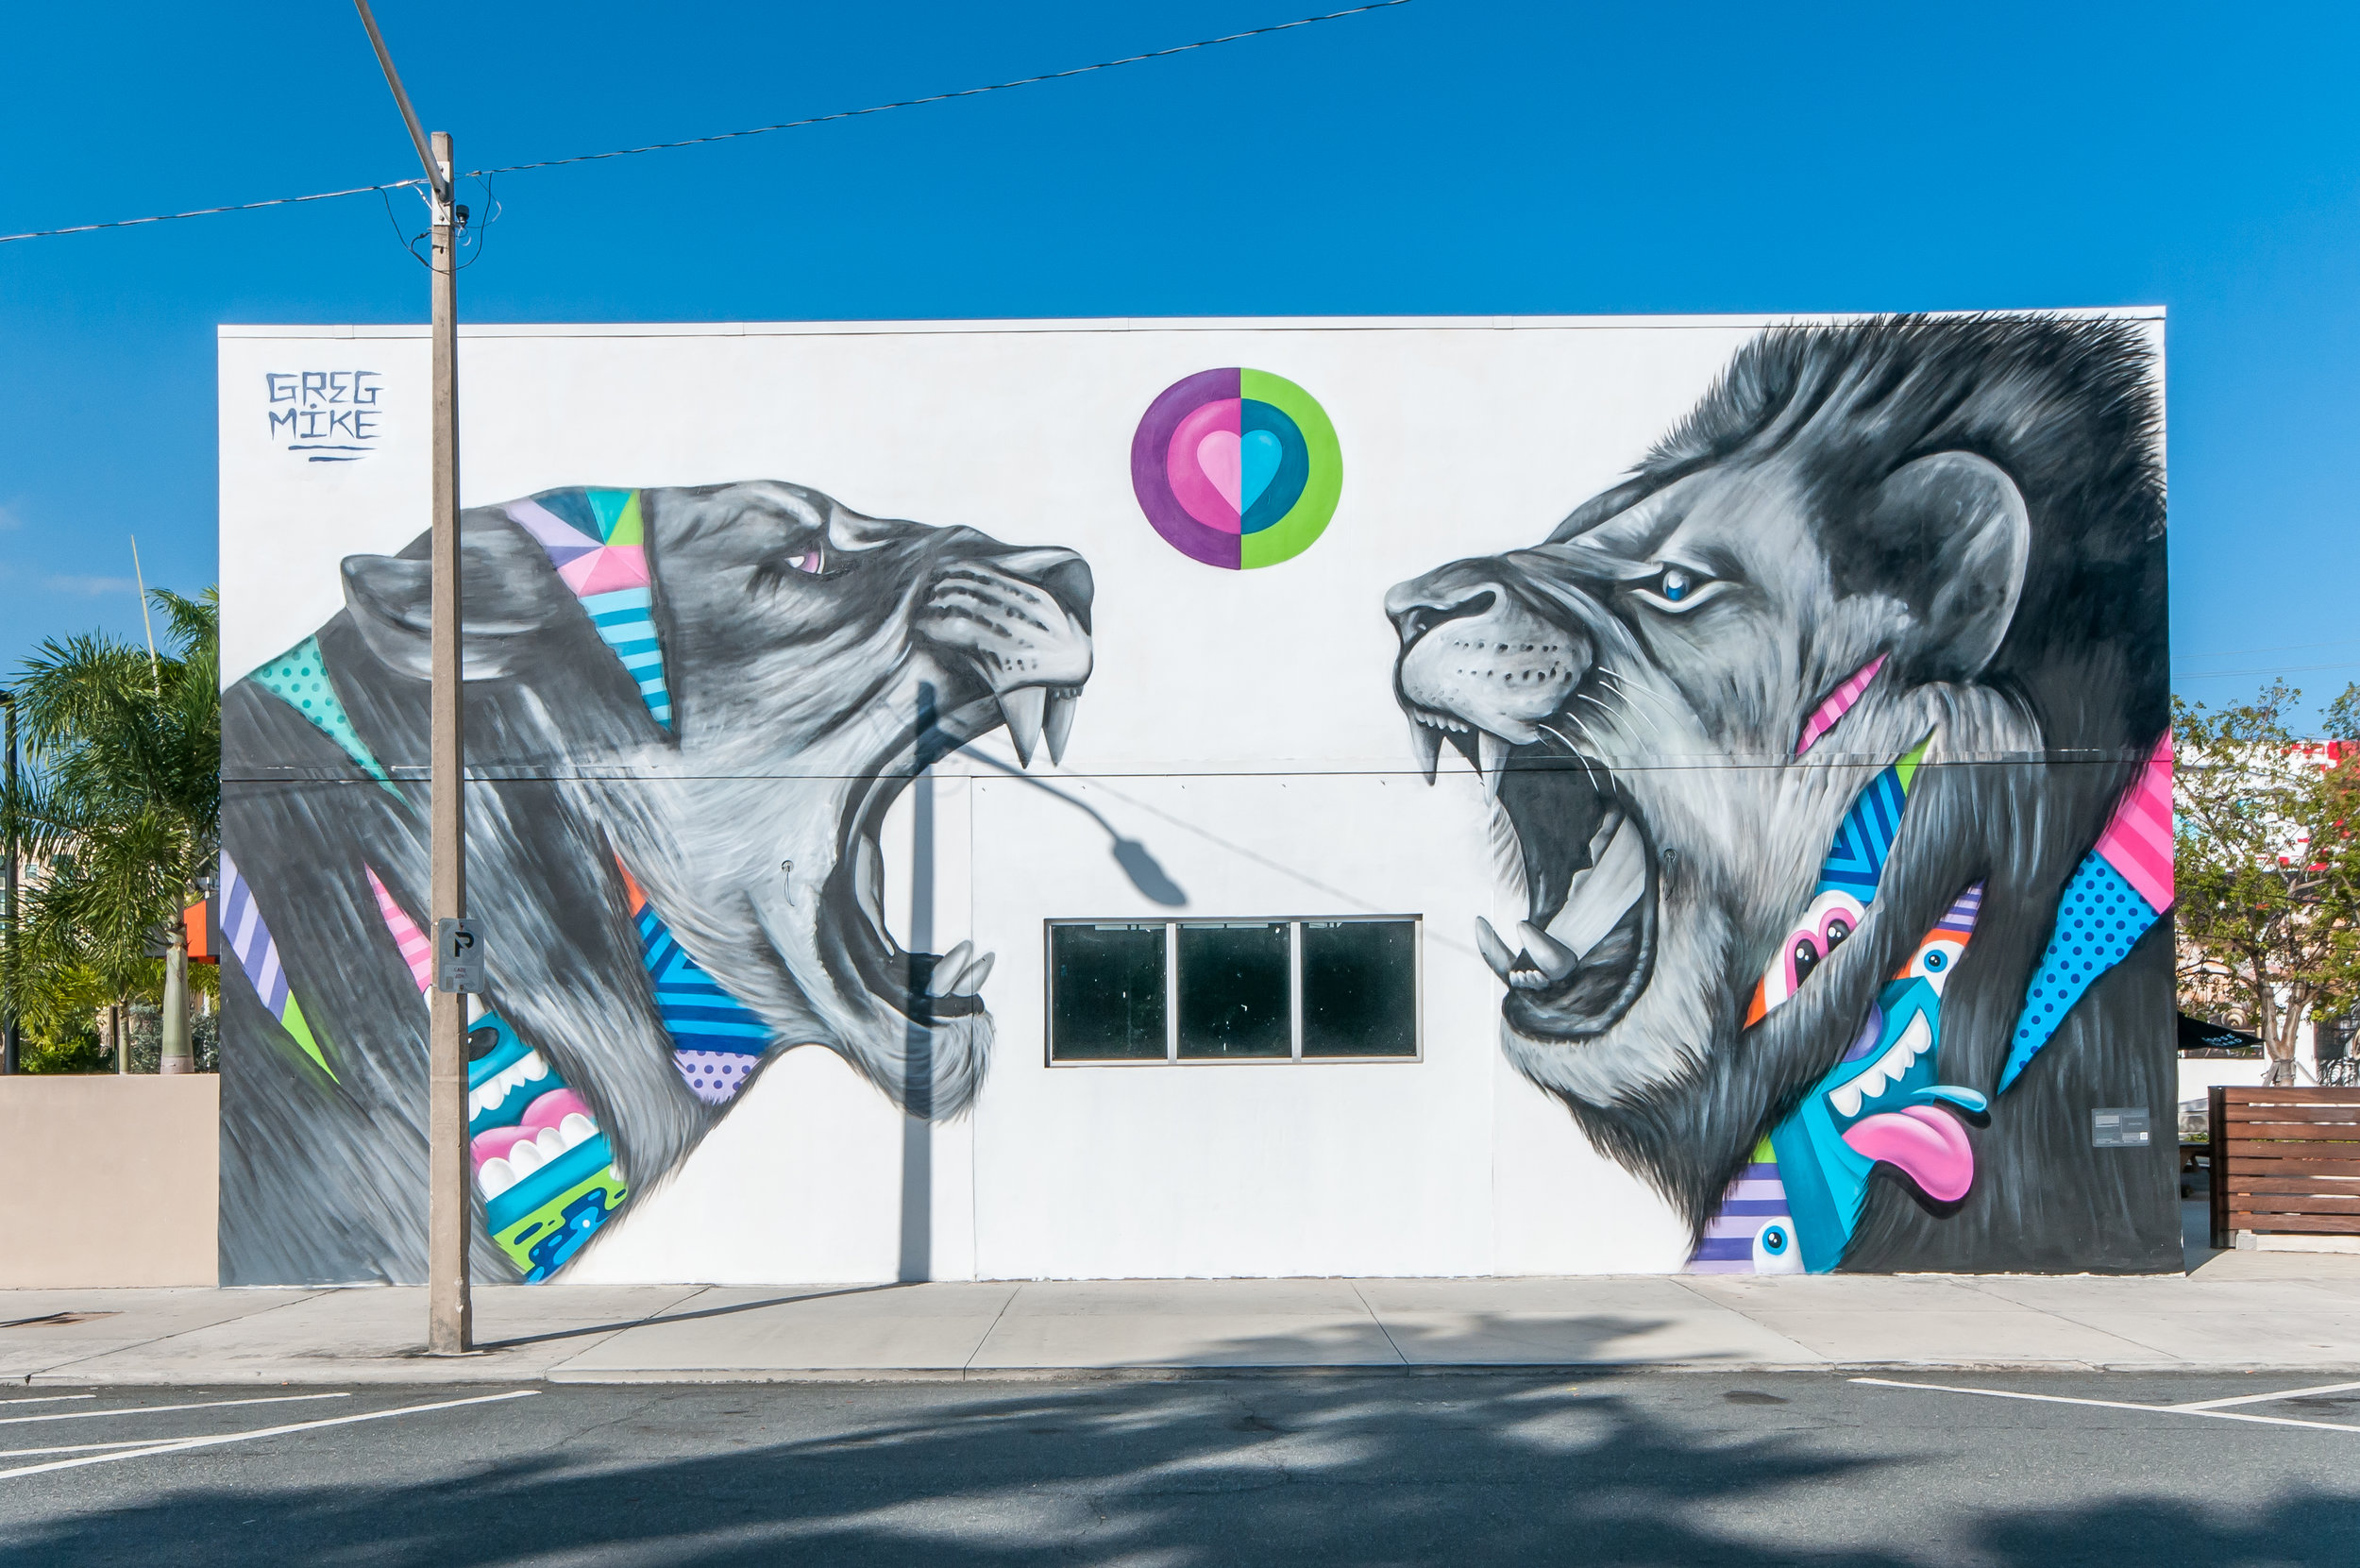 Greg Mike mural shot by Adrian Wilcox Photography for Canvas Outdoor Museum Show